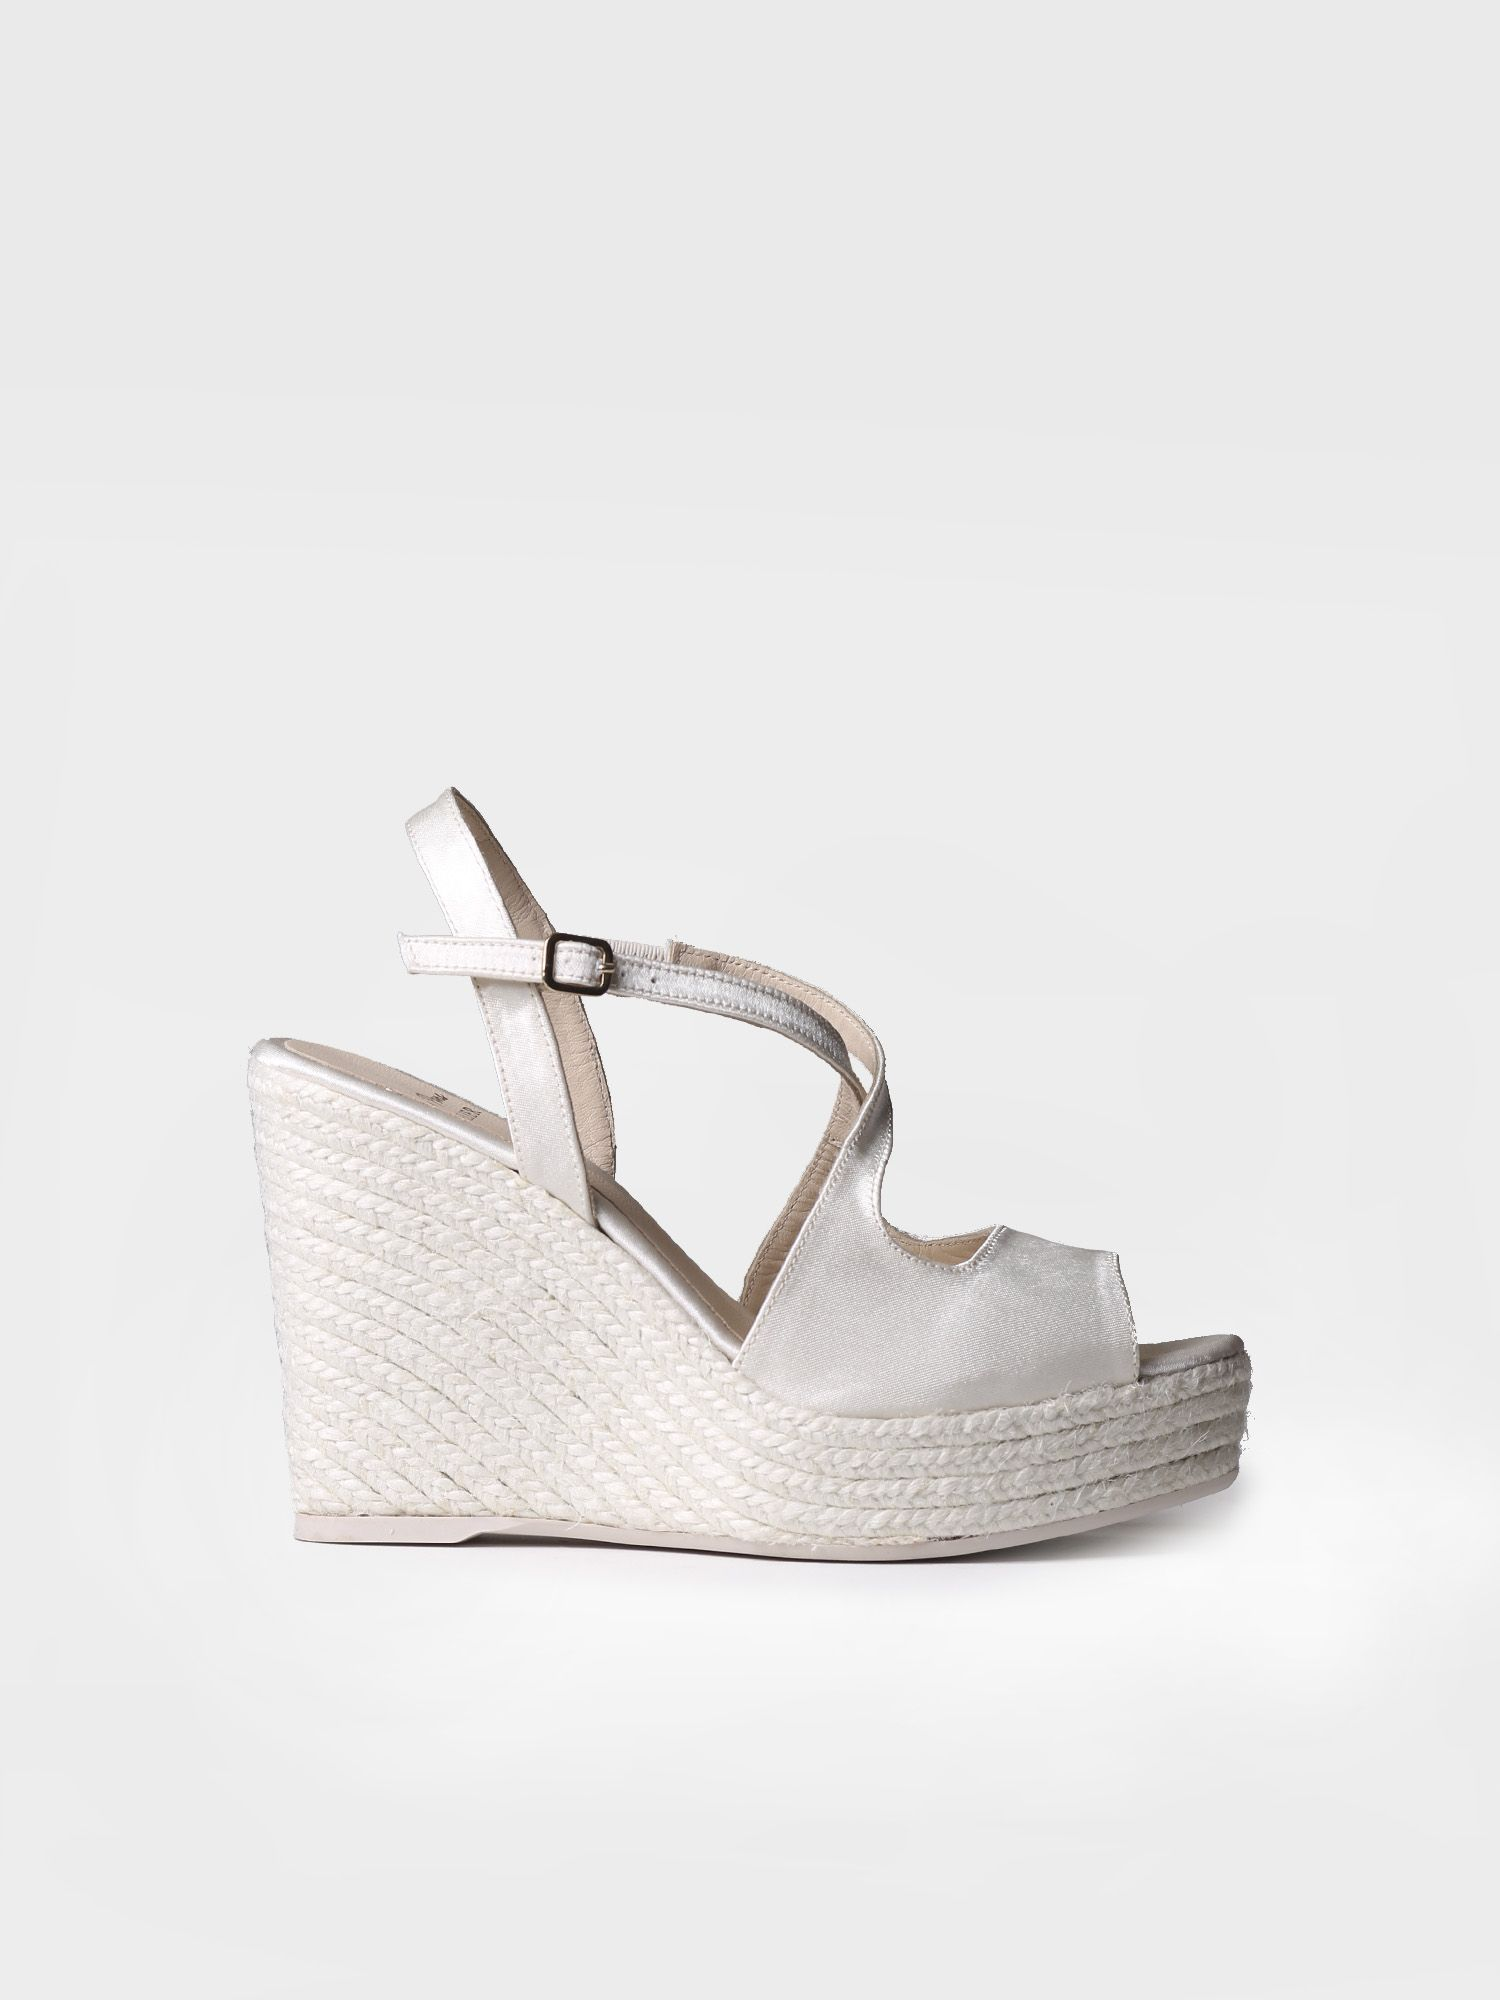 Bridal high wedge - JUSTINA